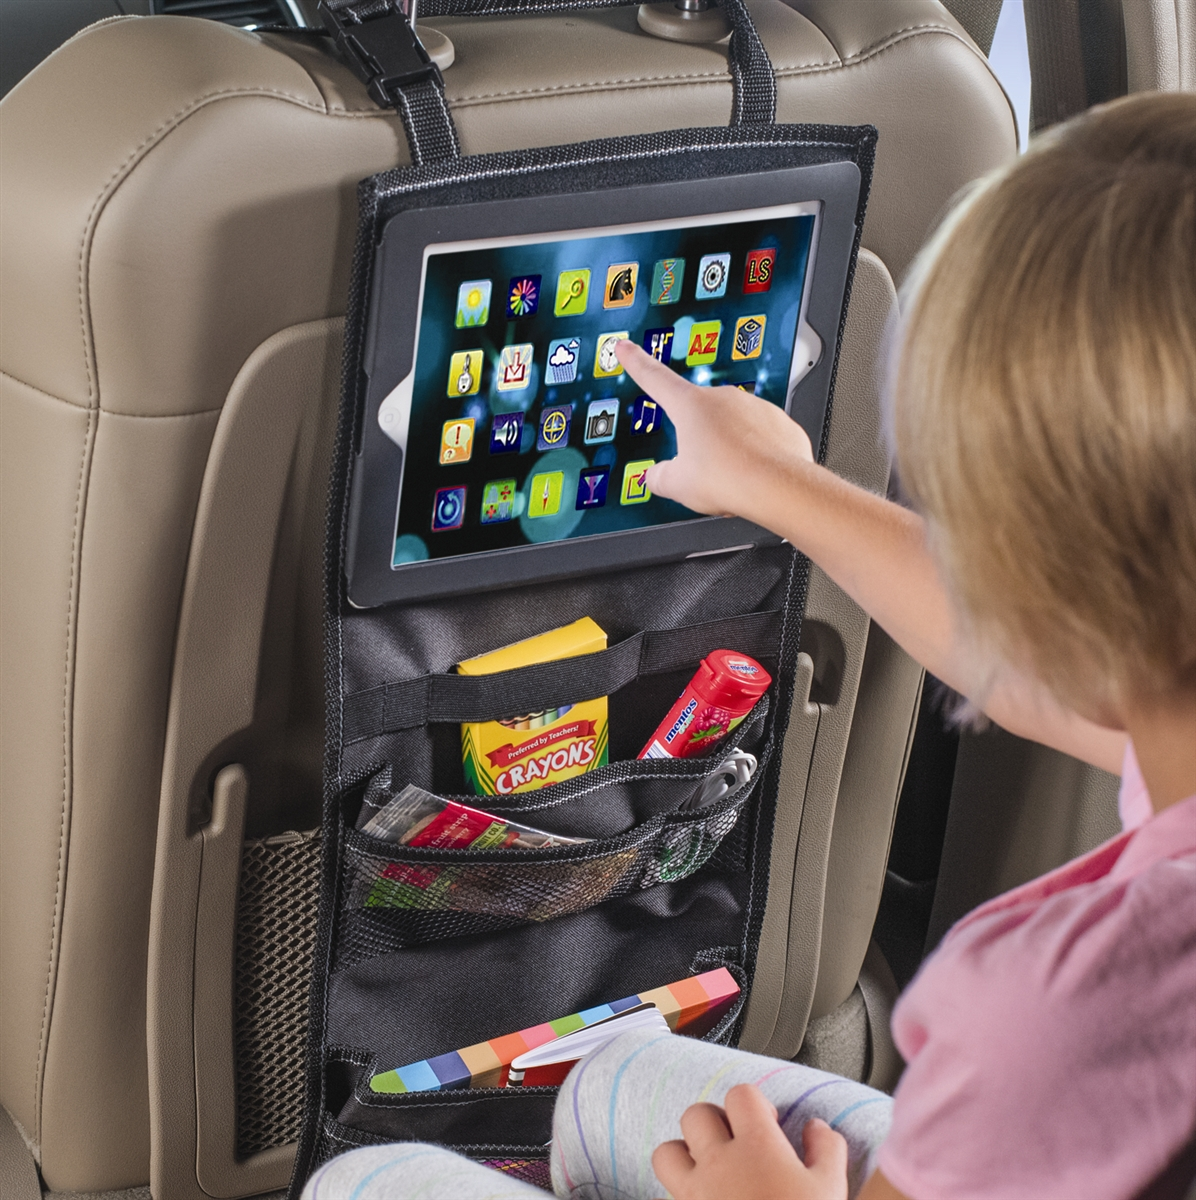 report finds that kids prefer phones and tablets over nintendos handhelds on car trips my nintendo news